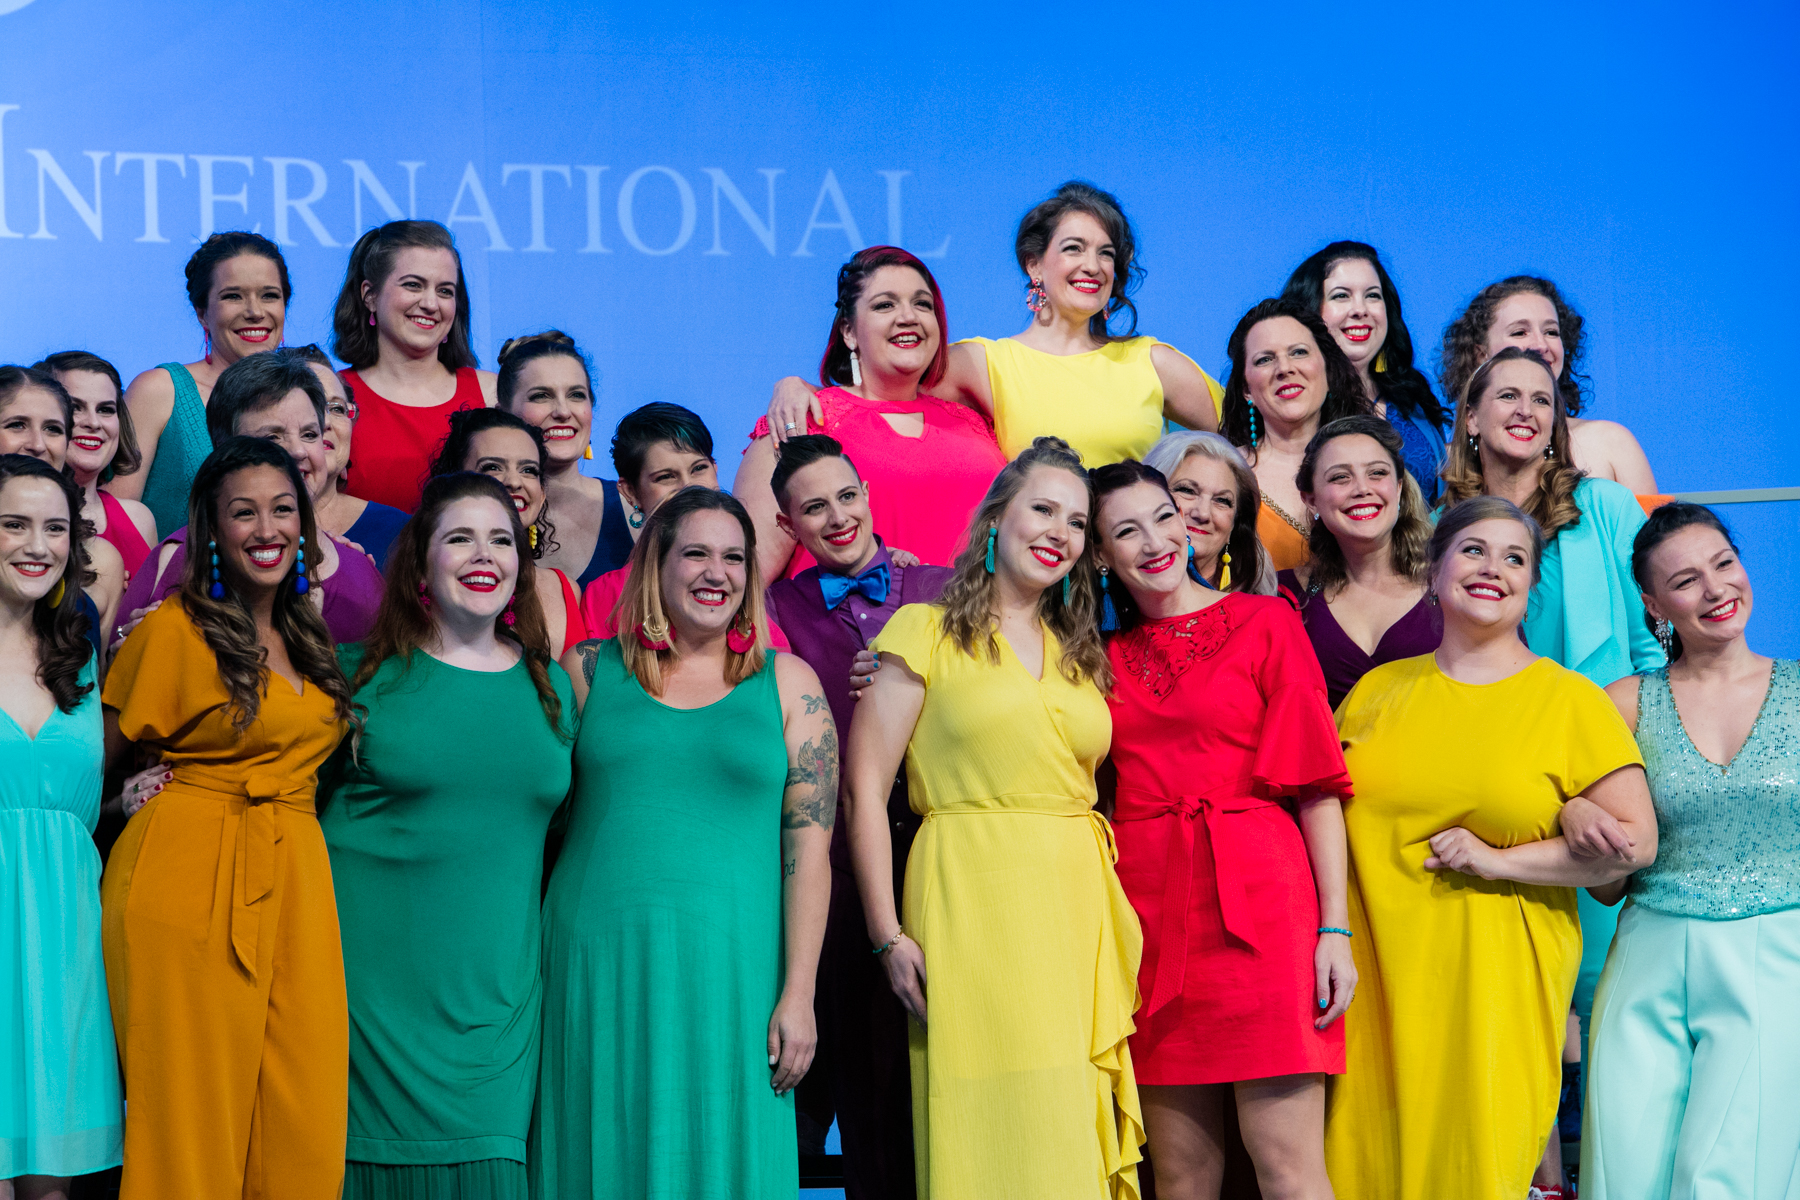 Sweet Adelines International 2019 Harmony Classic performance in St. Louis  Photo by Read Photography